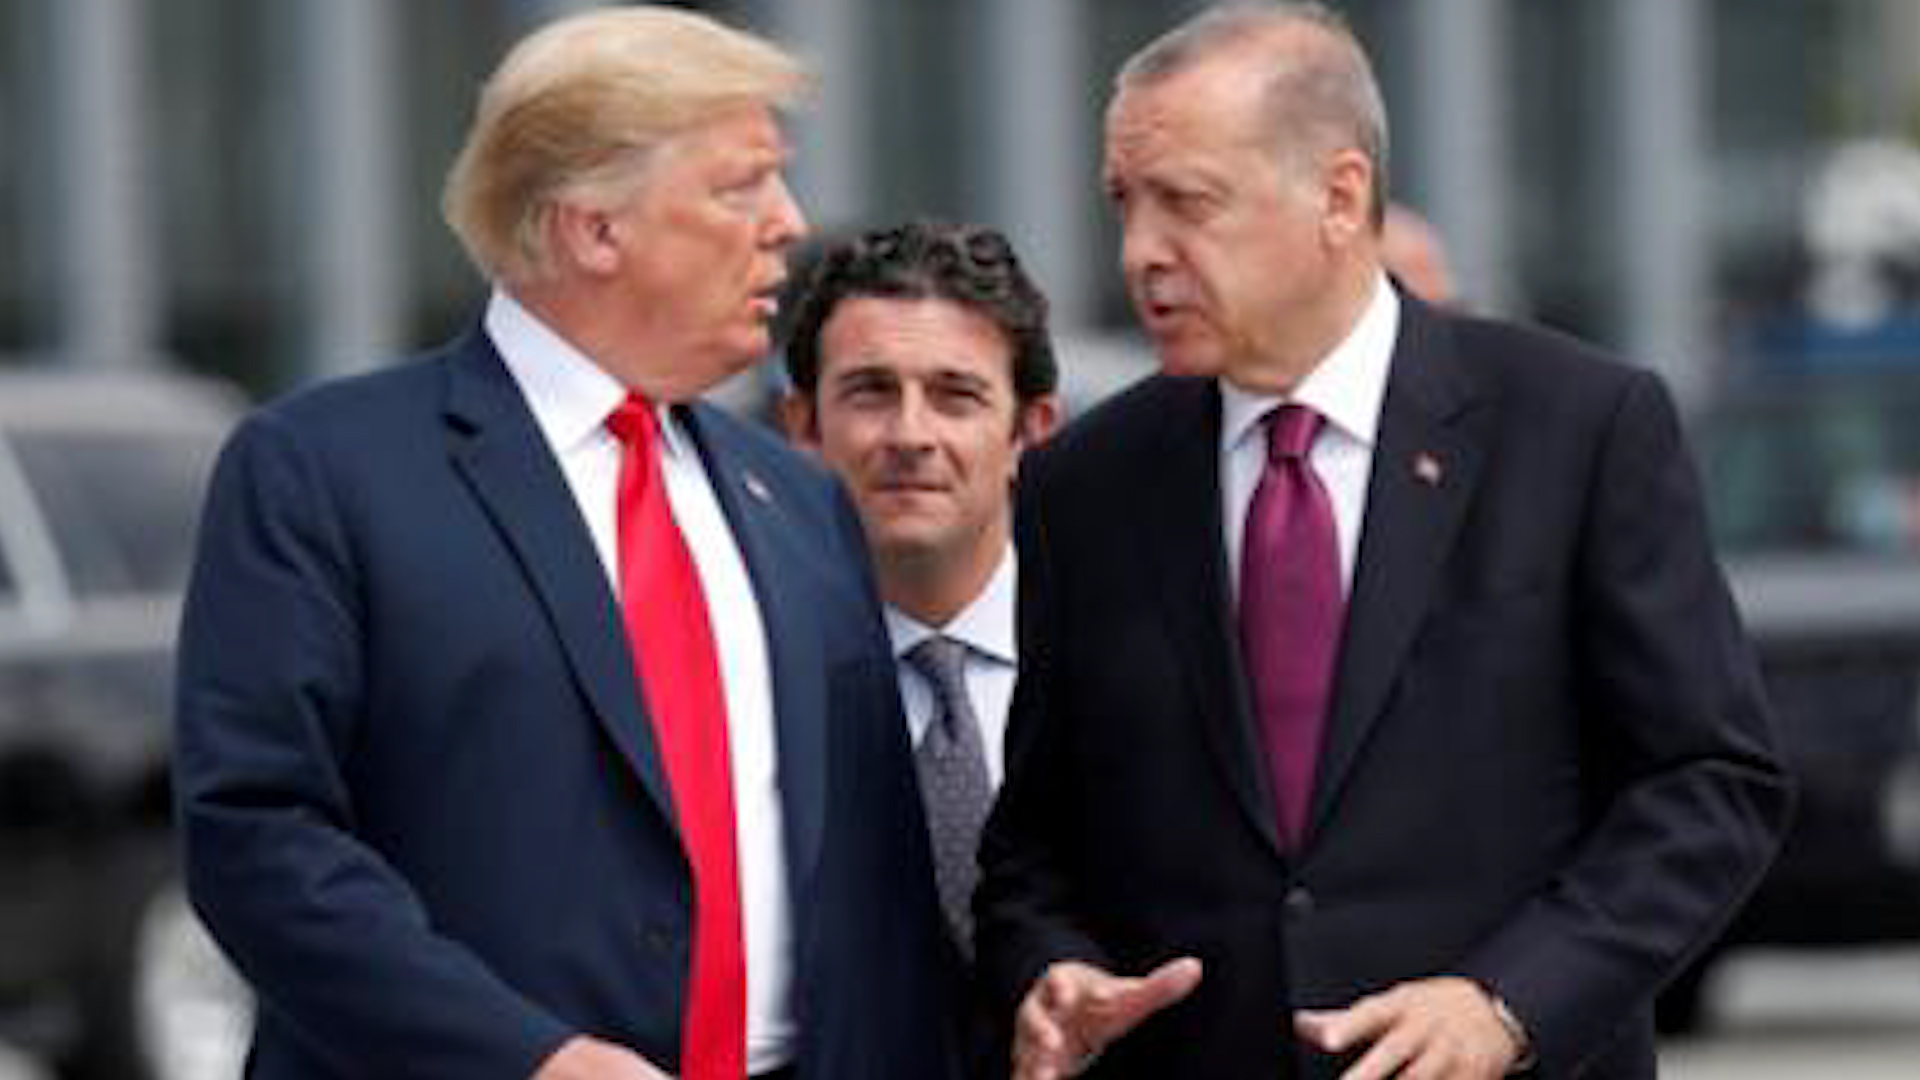 Photo of Trump: Destwerdana Tirkiyê di Lîbyayê de rewşê aloztir dike